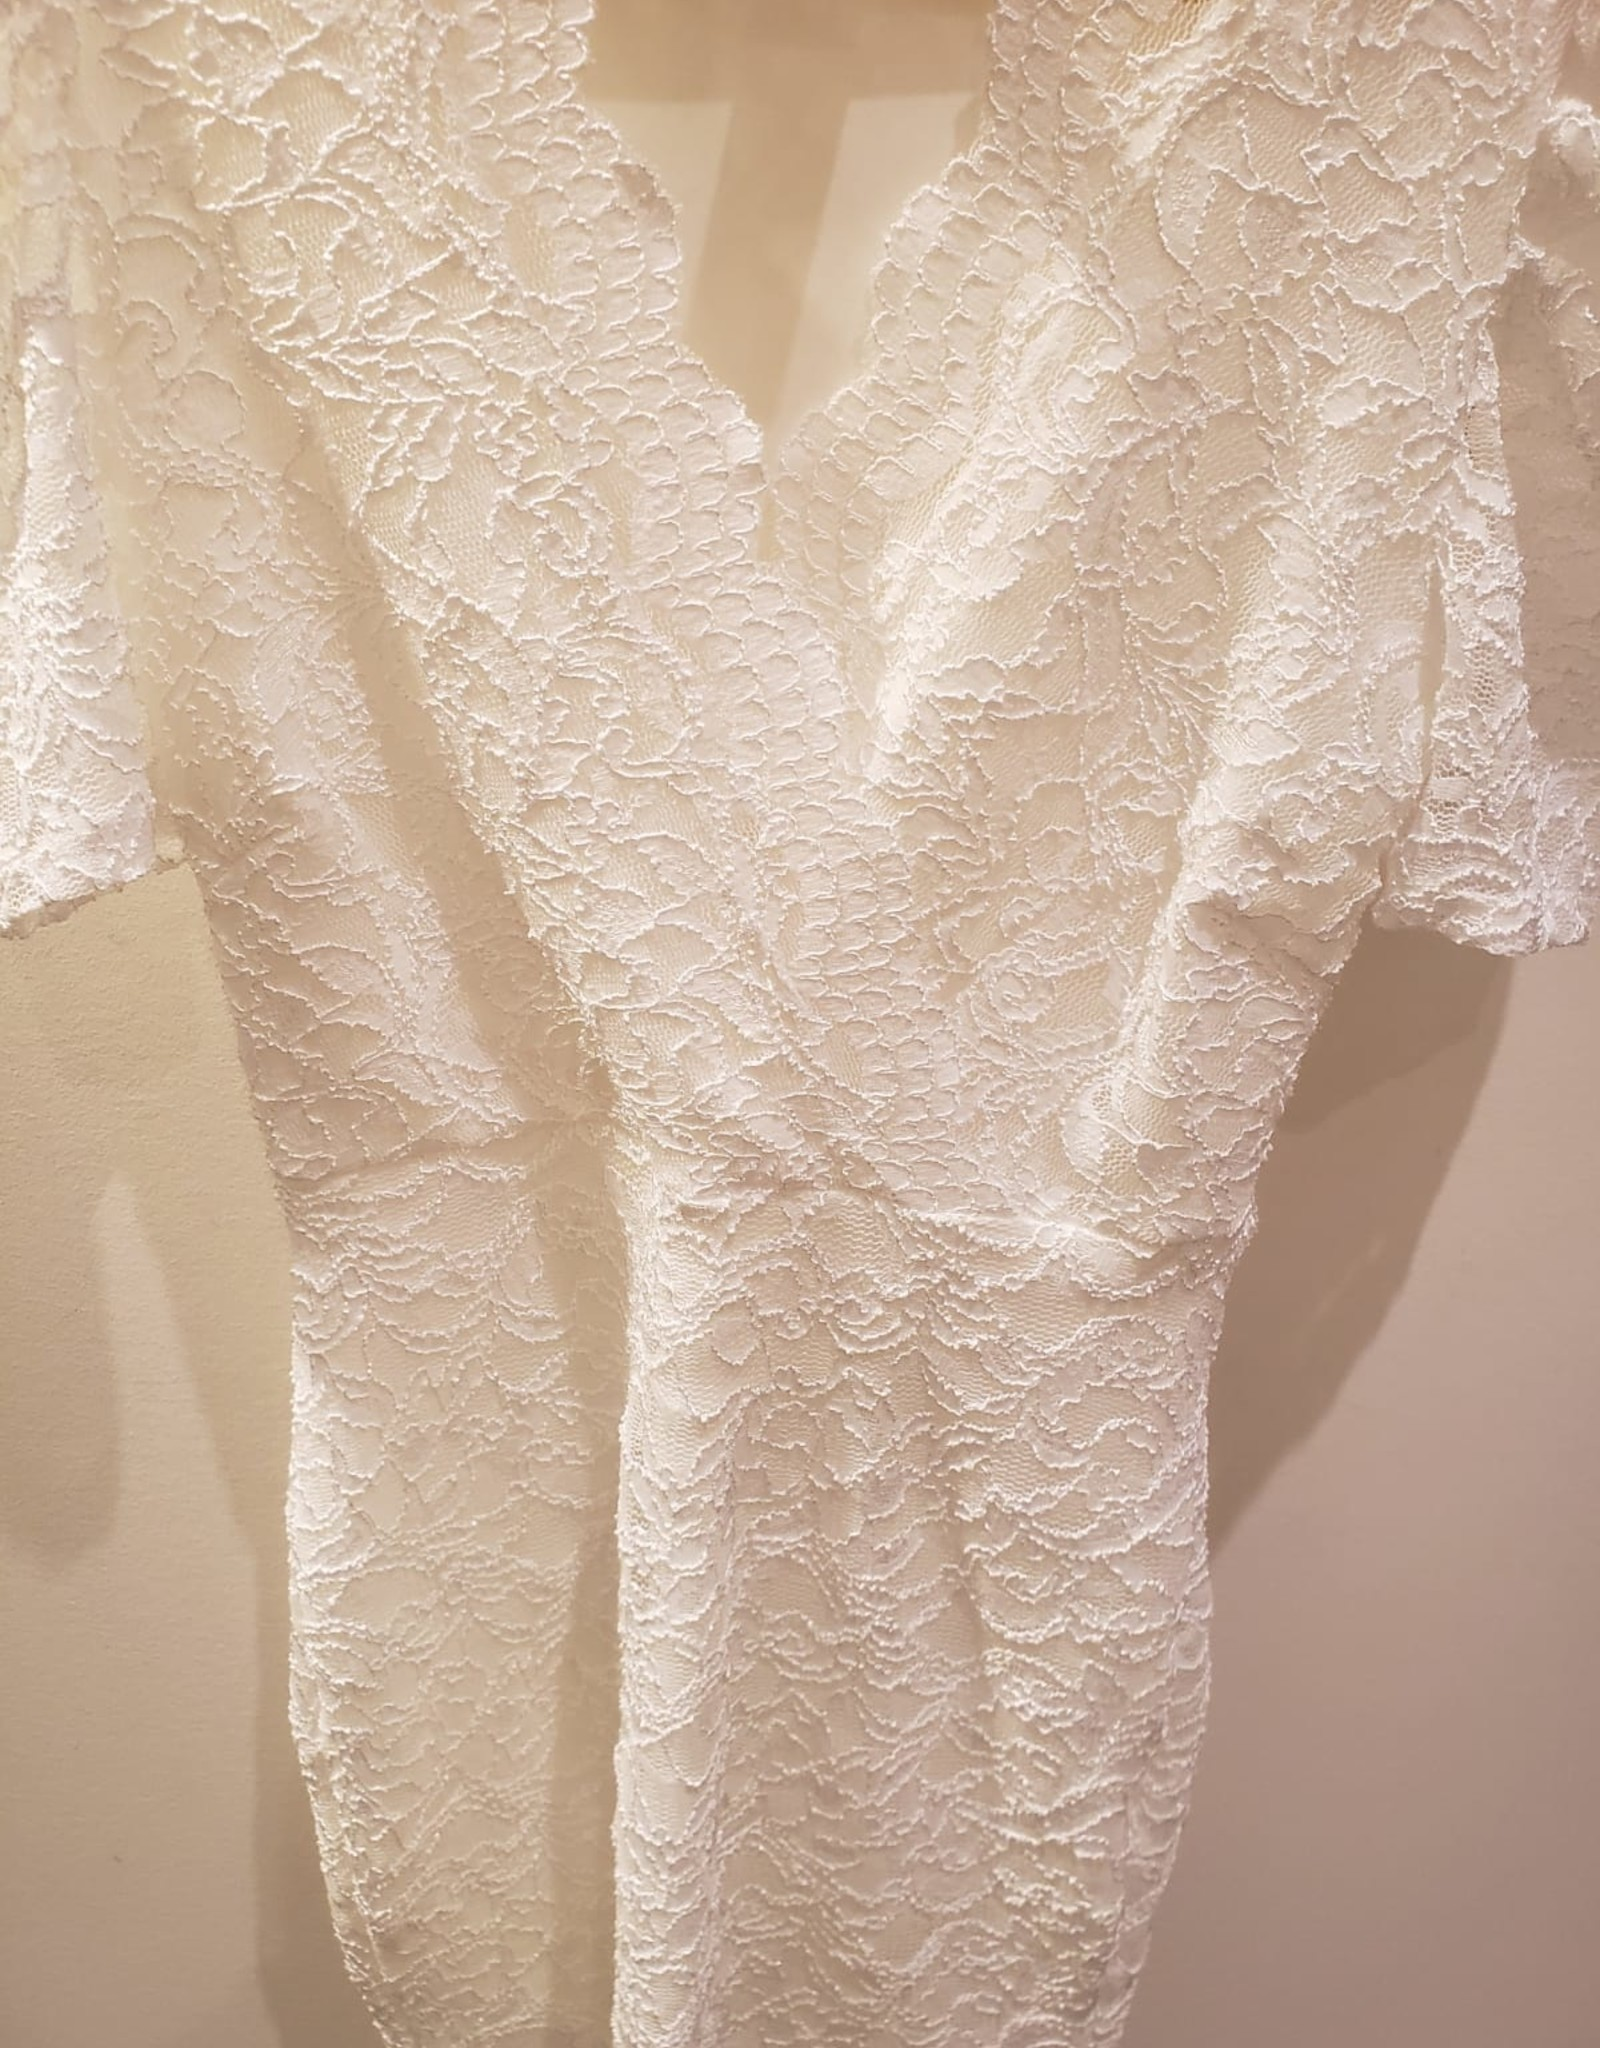 Jacaranda lace dress